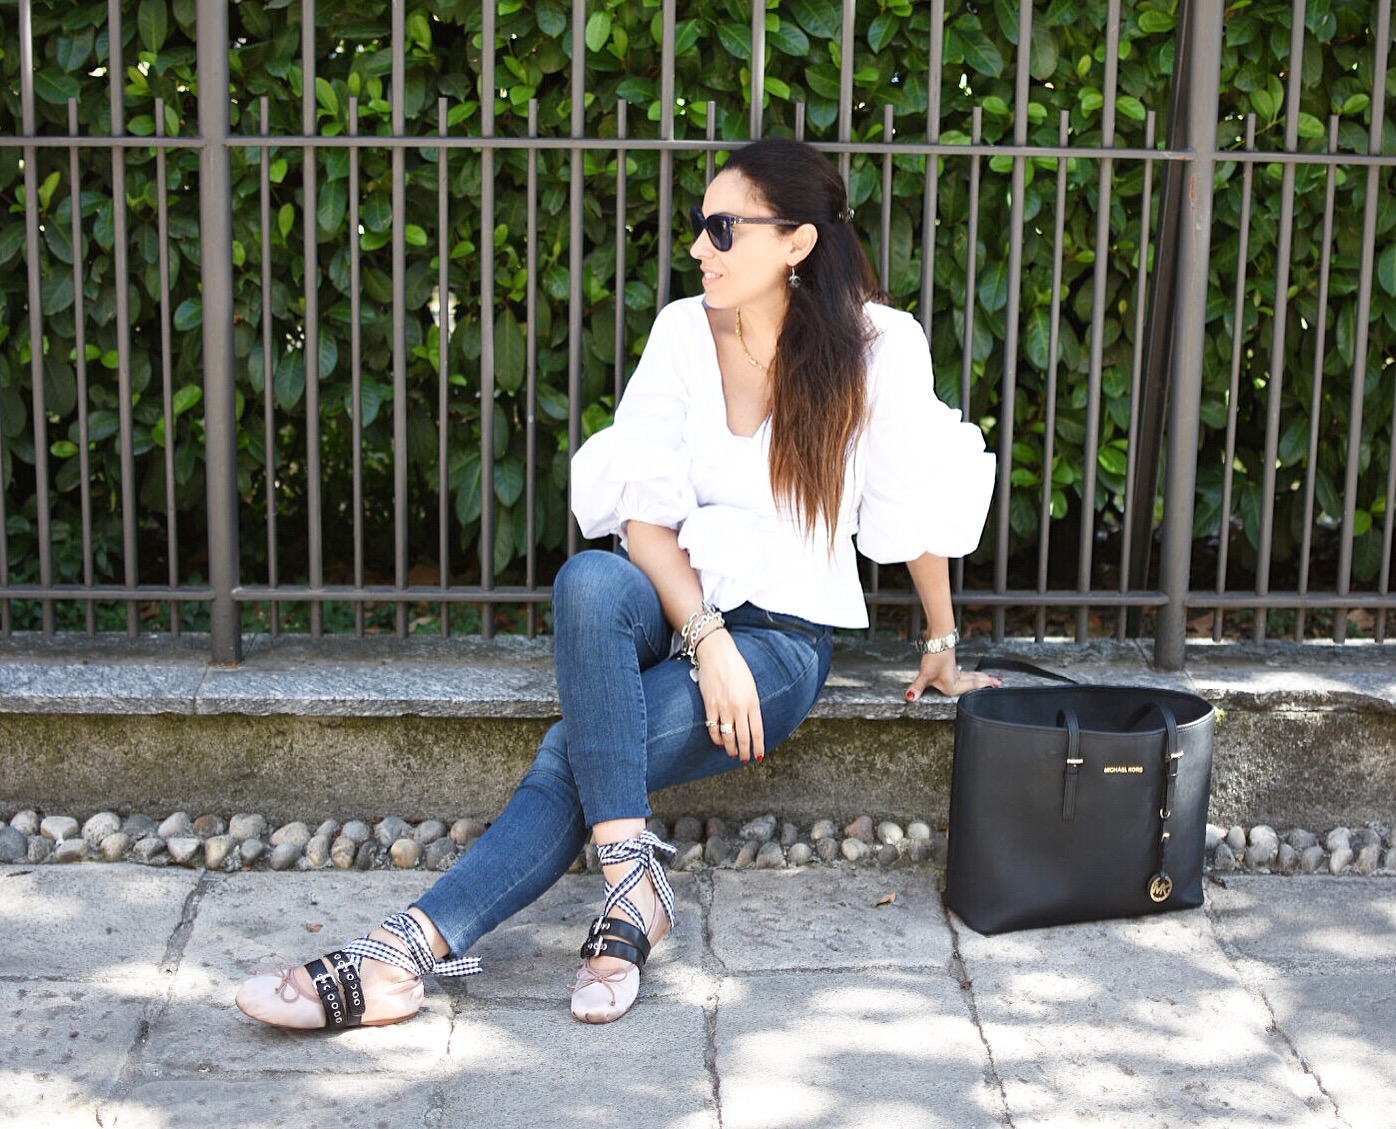 flat-shoes-jessica-buurman-valentina-coco-fashion-blogger-street-style